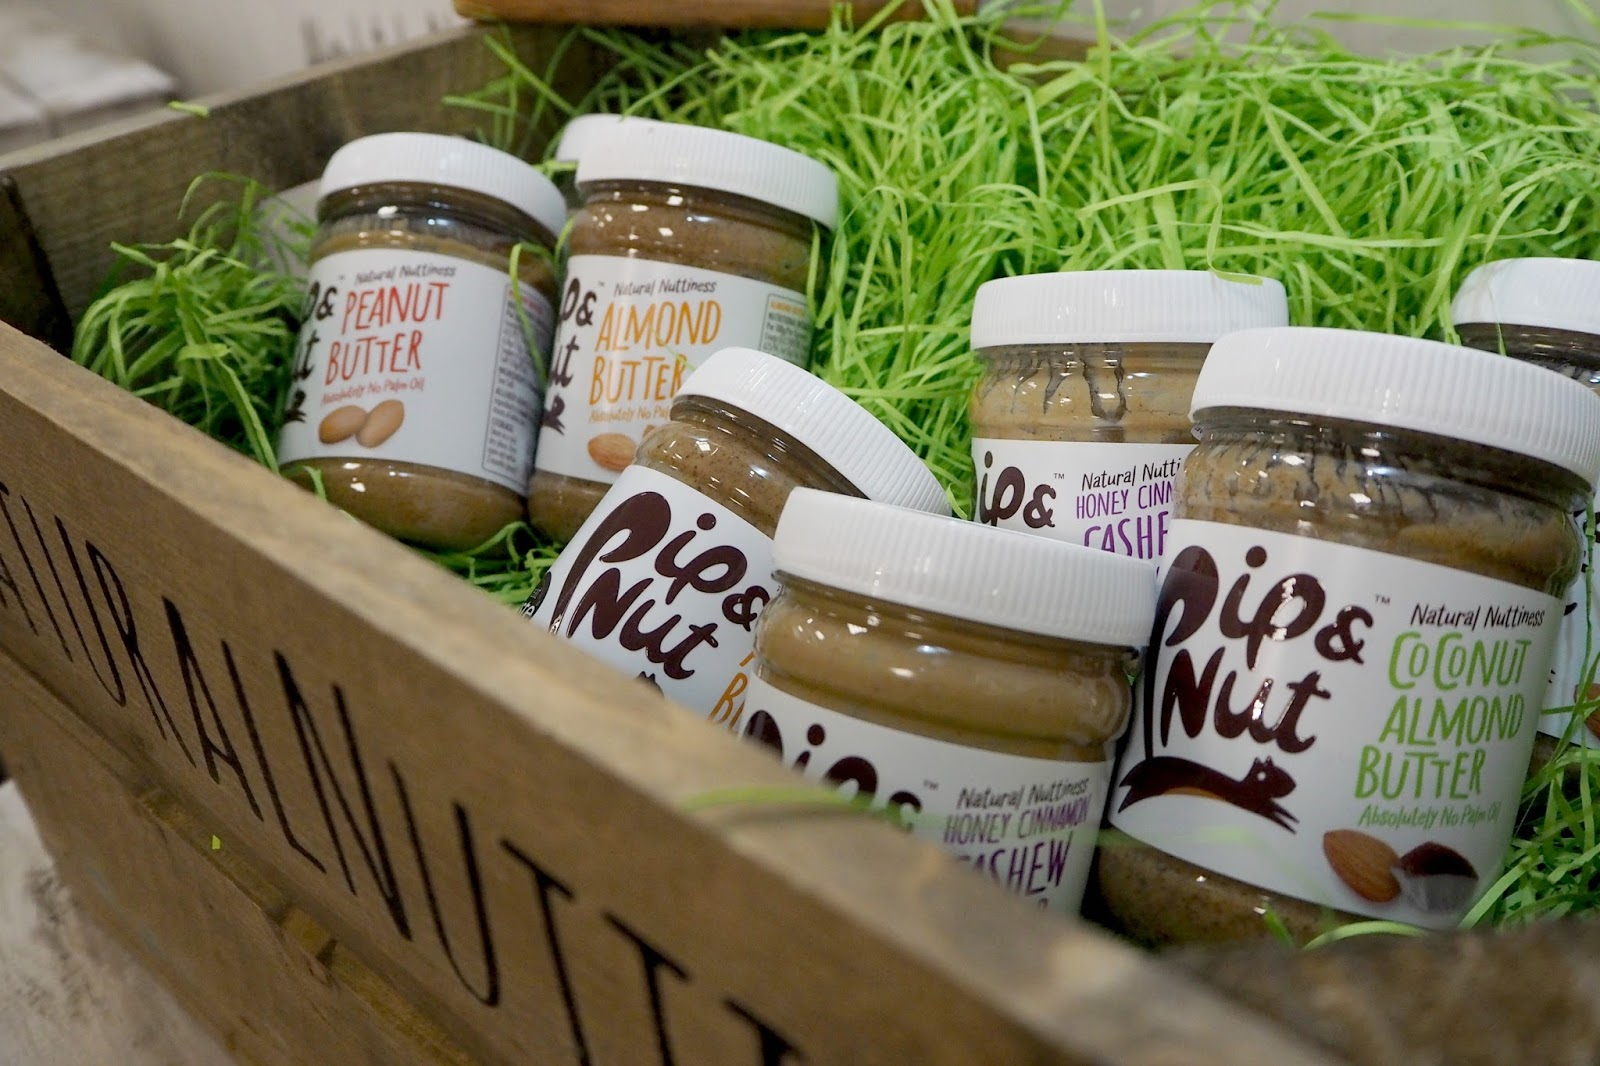 pip-and-nut-butter-vegan-food-copper-garden